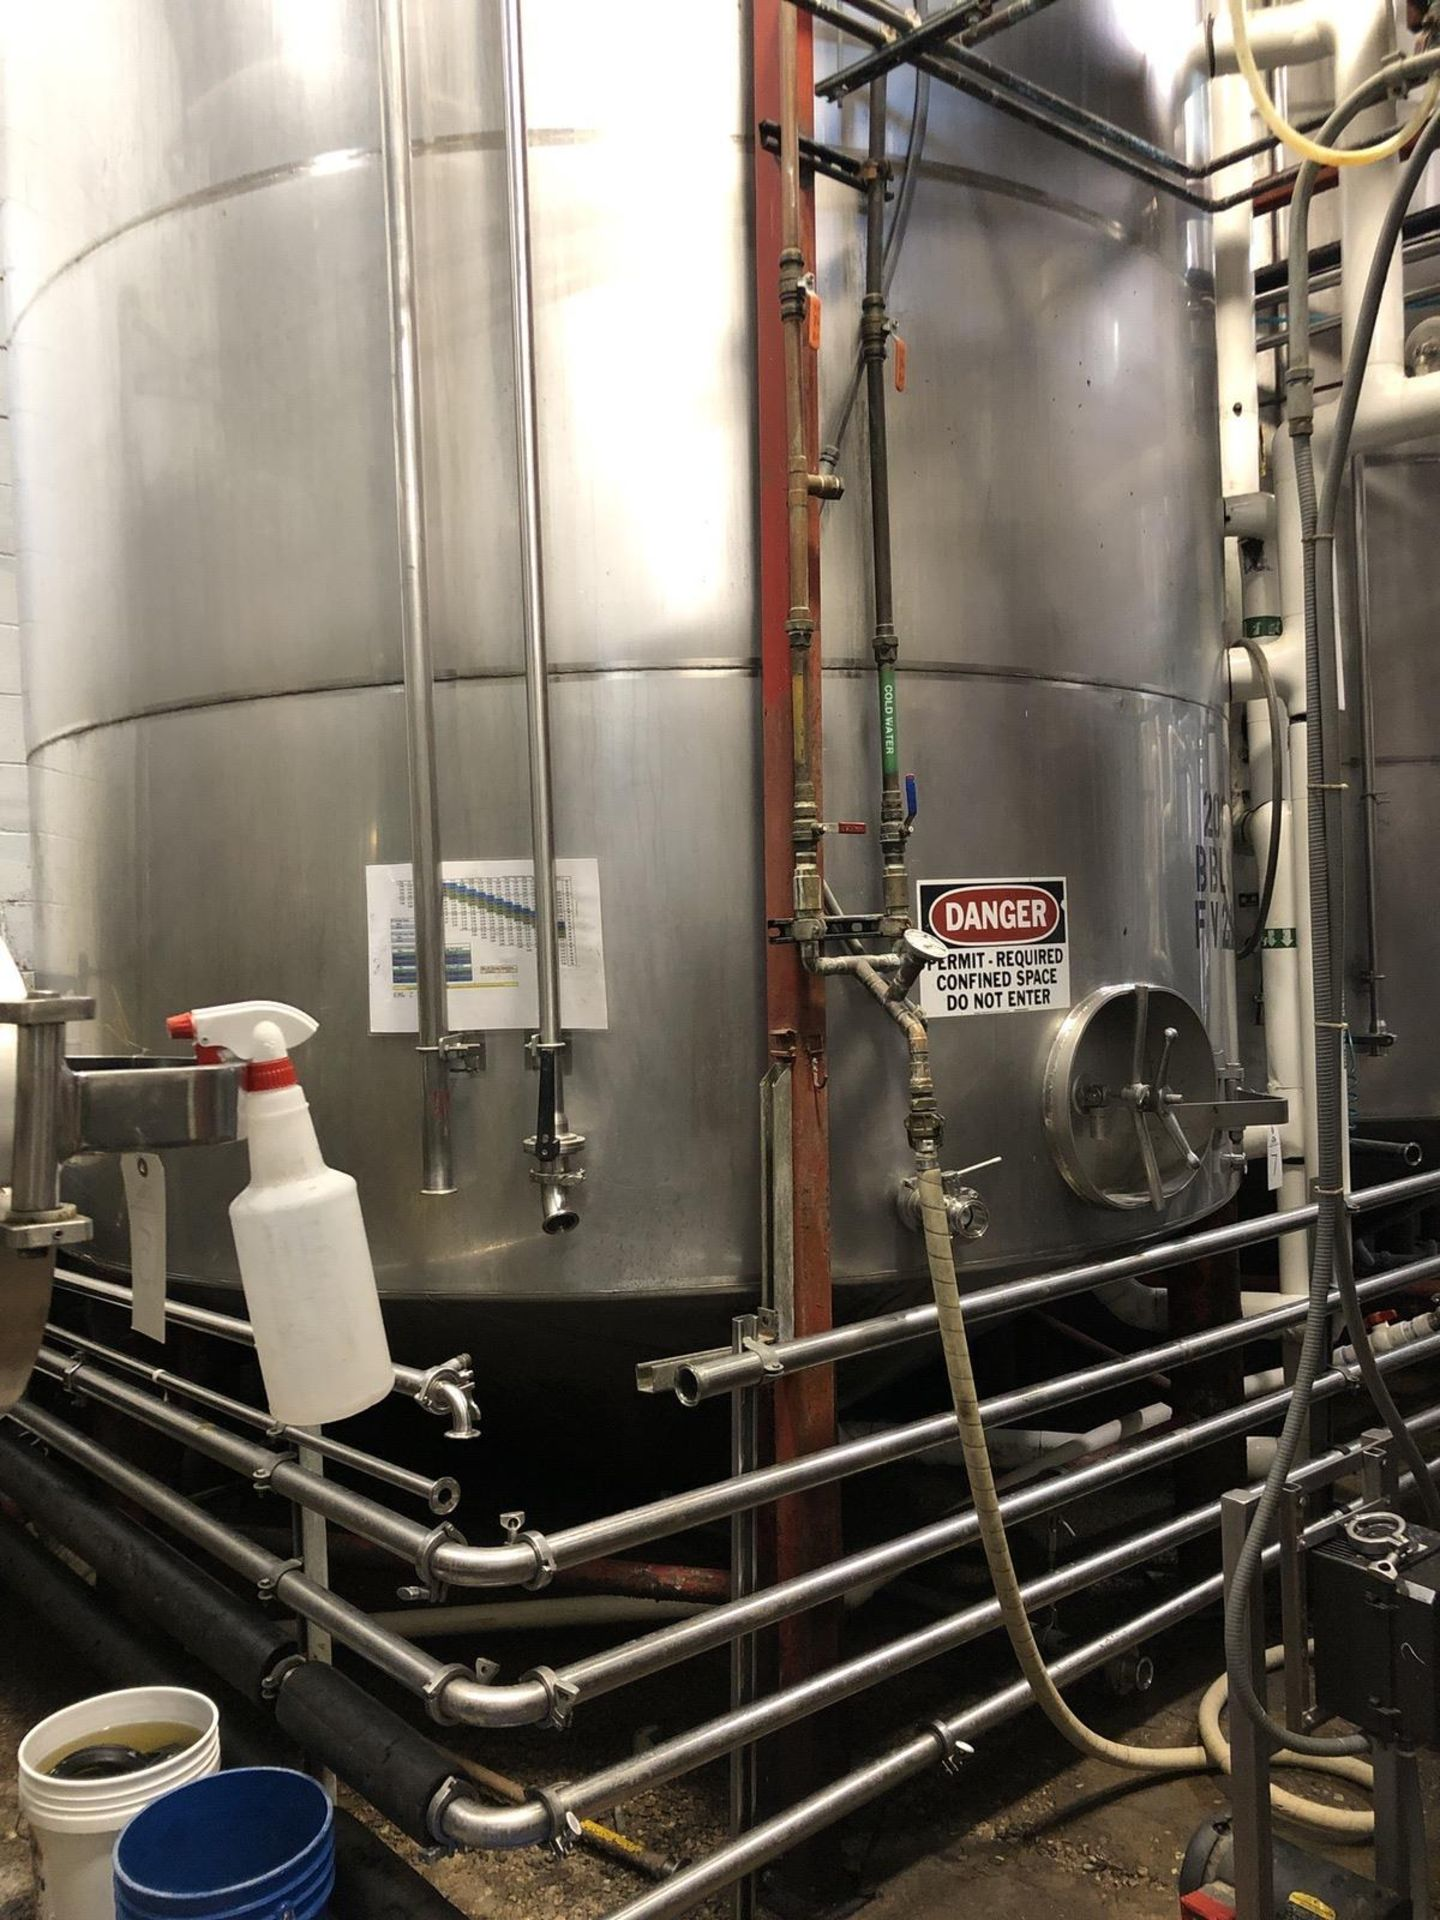 Lot 7 - Santa Rosa 200 BBL Fermenter, Cone Bottom, Glycol Jacketed, Stainless Steel, Approx   Rig Fee: $3300